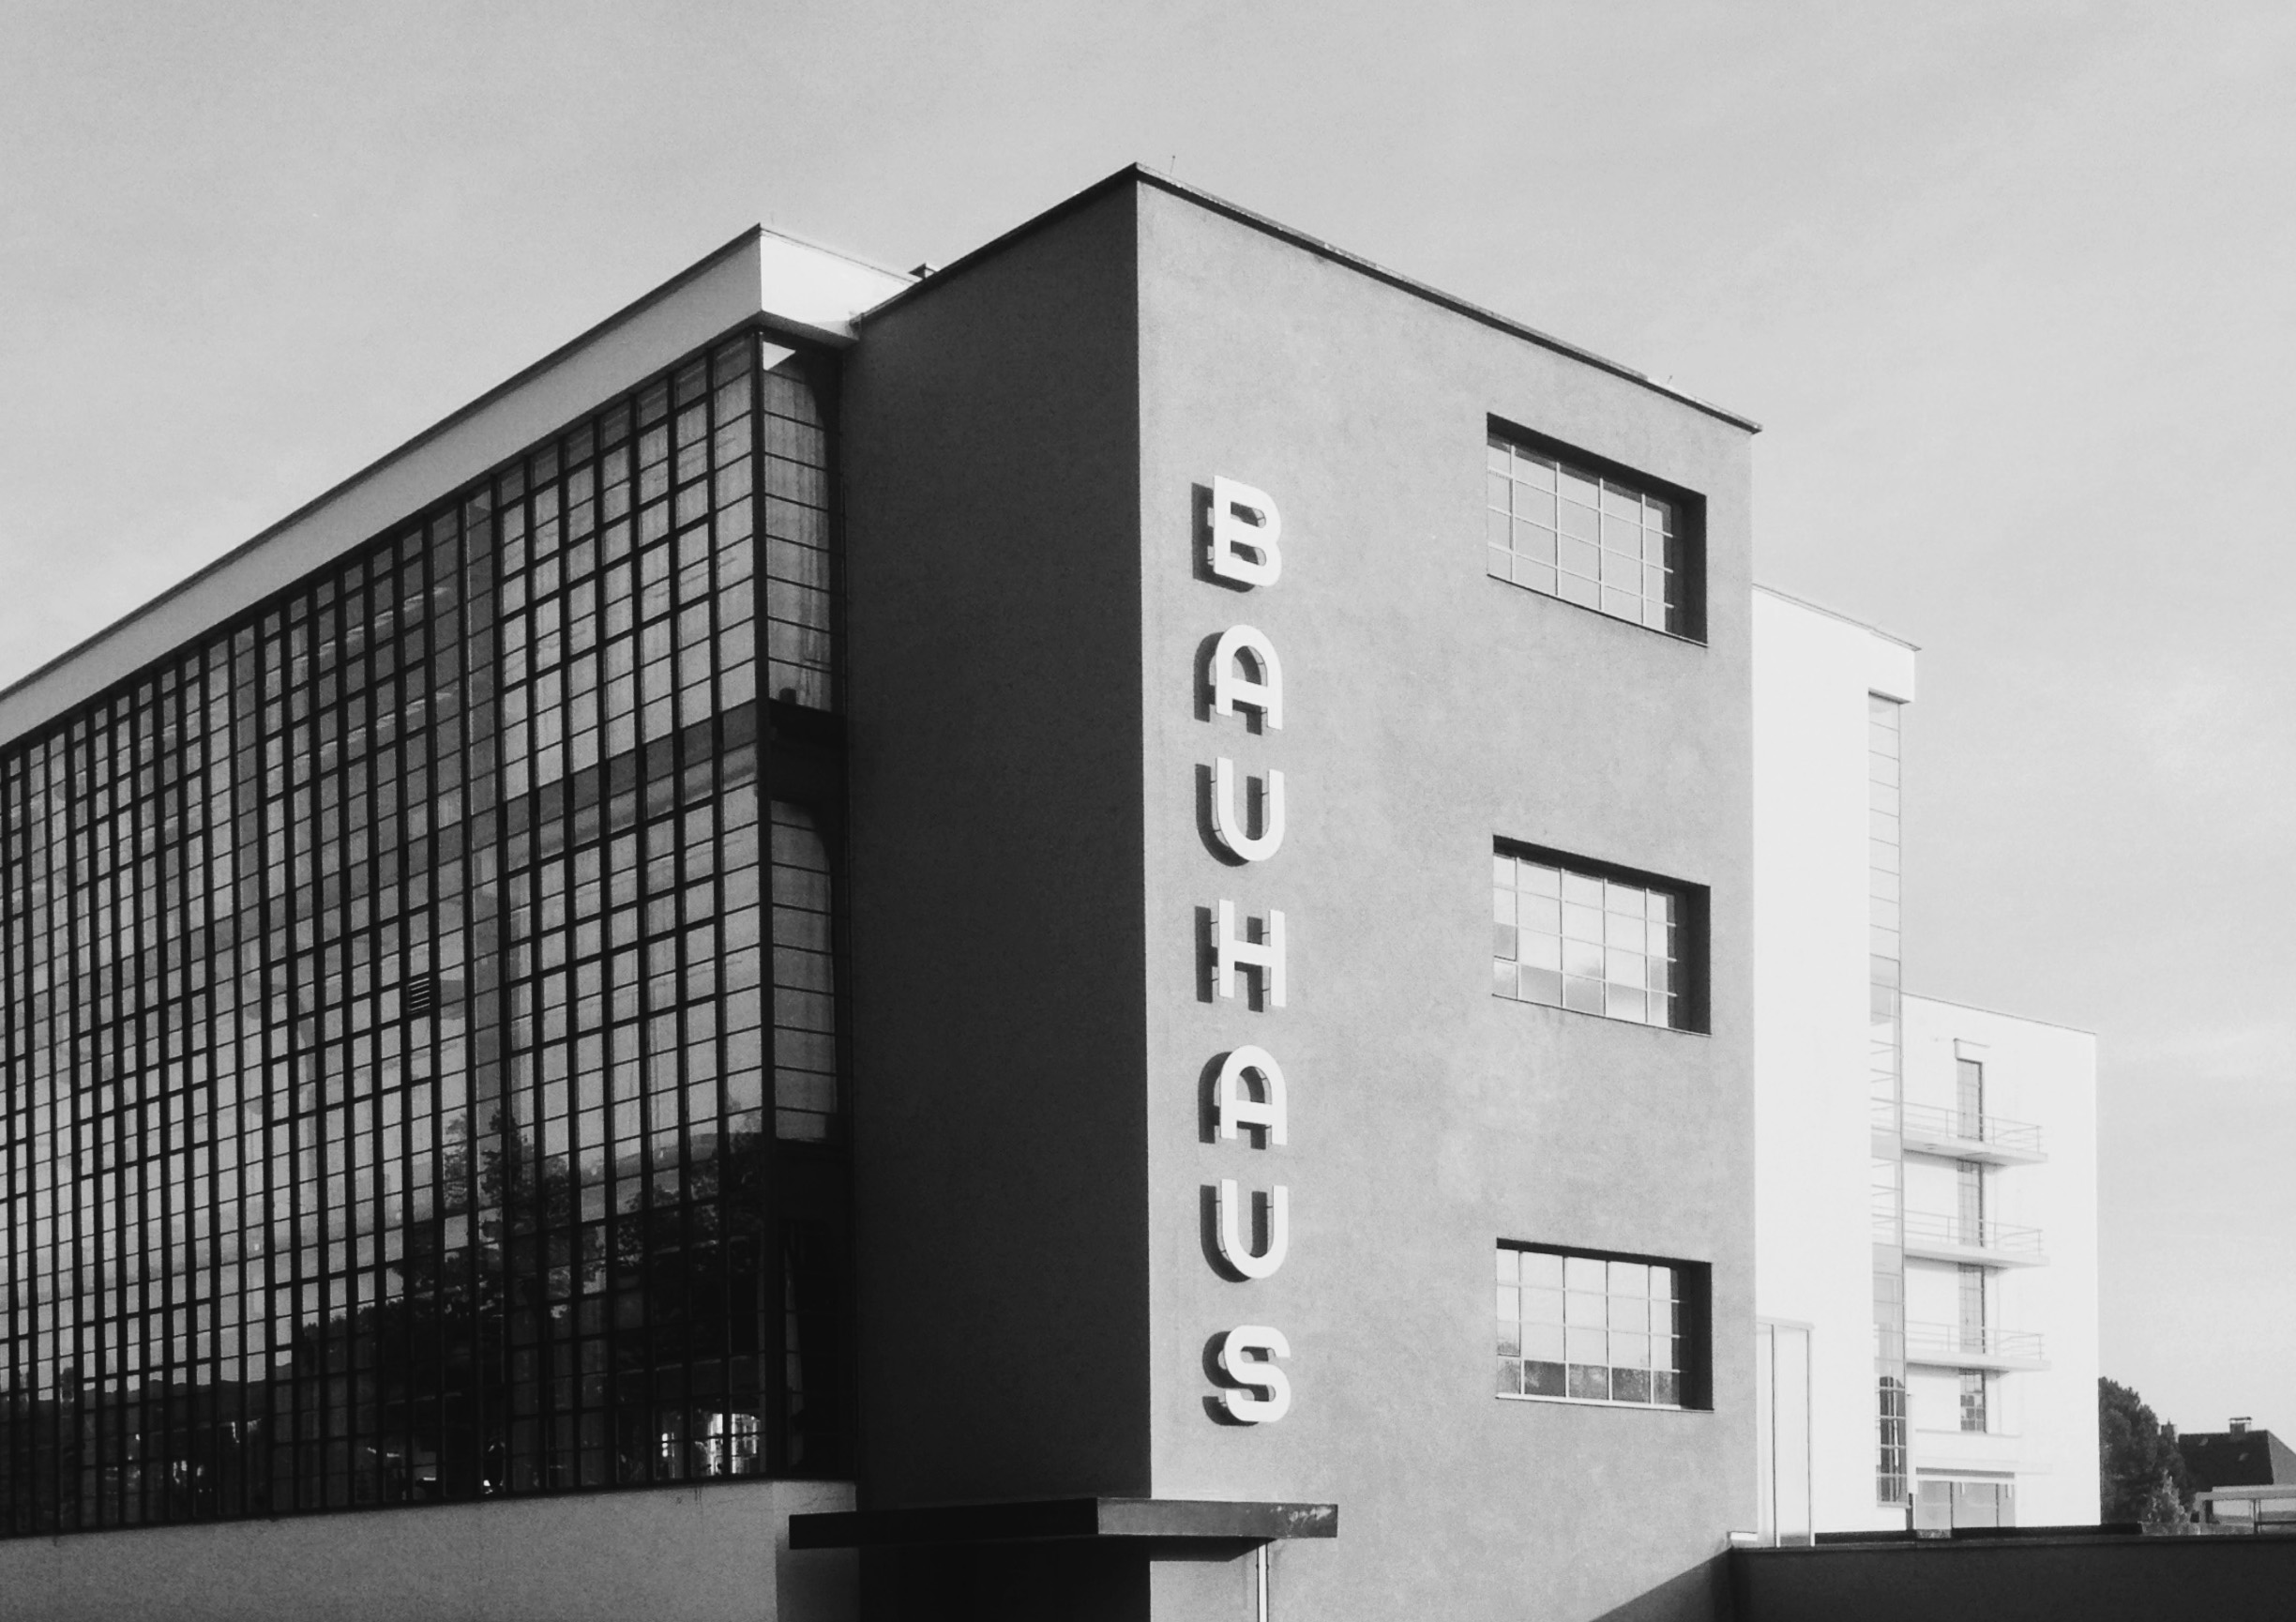 Bauhaus building in Dessau by architect Walter Gropius. Photographer: Glenn Garriock.